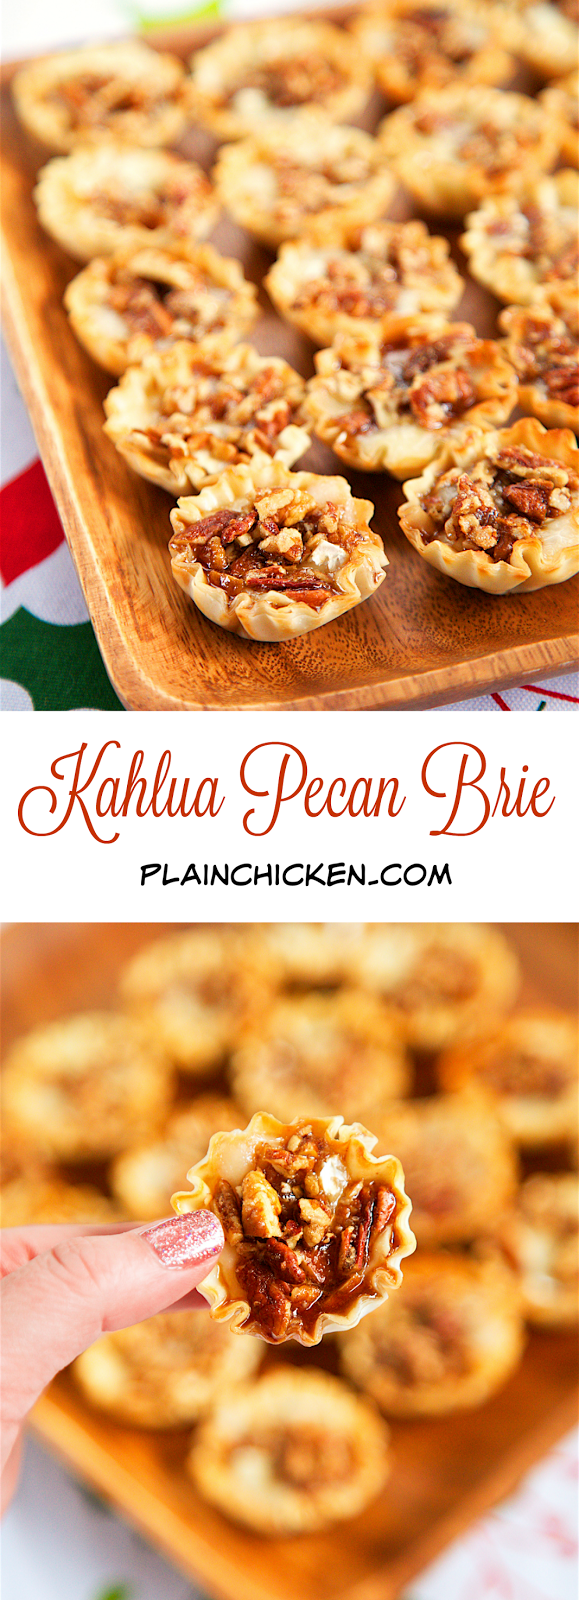 Kahlua Pecan Brie Bites - only 5 ingredients! Can assemble ahead of time and refrigerate until ready to bake. Perfect party food!